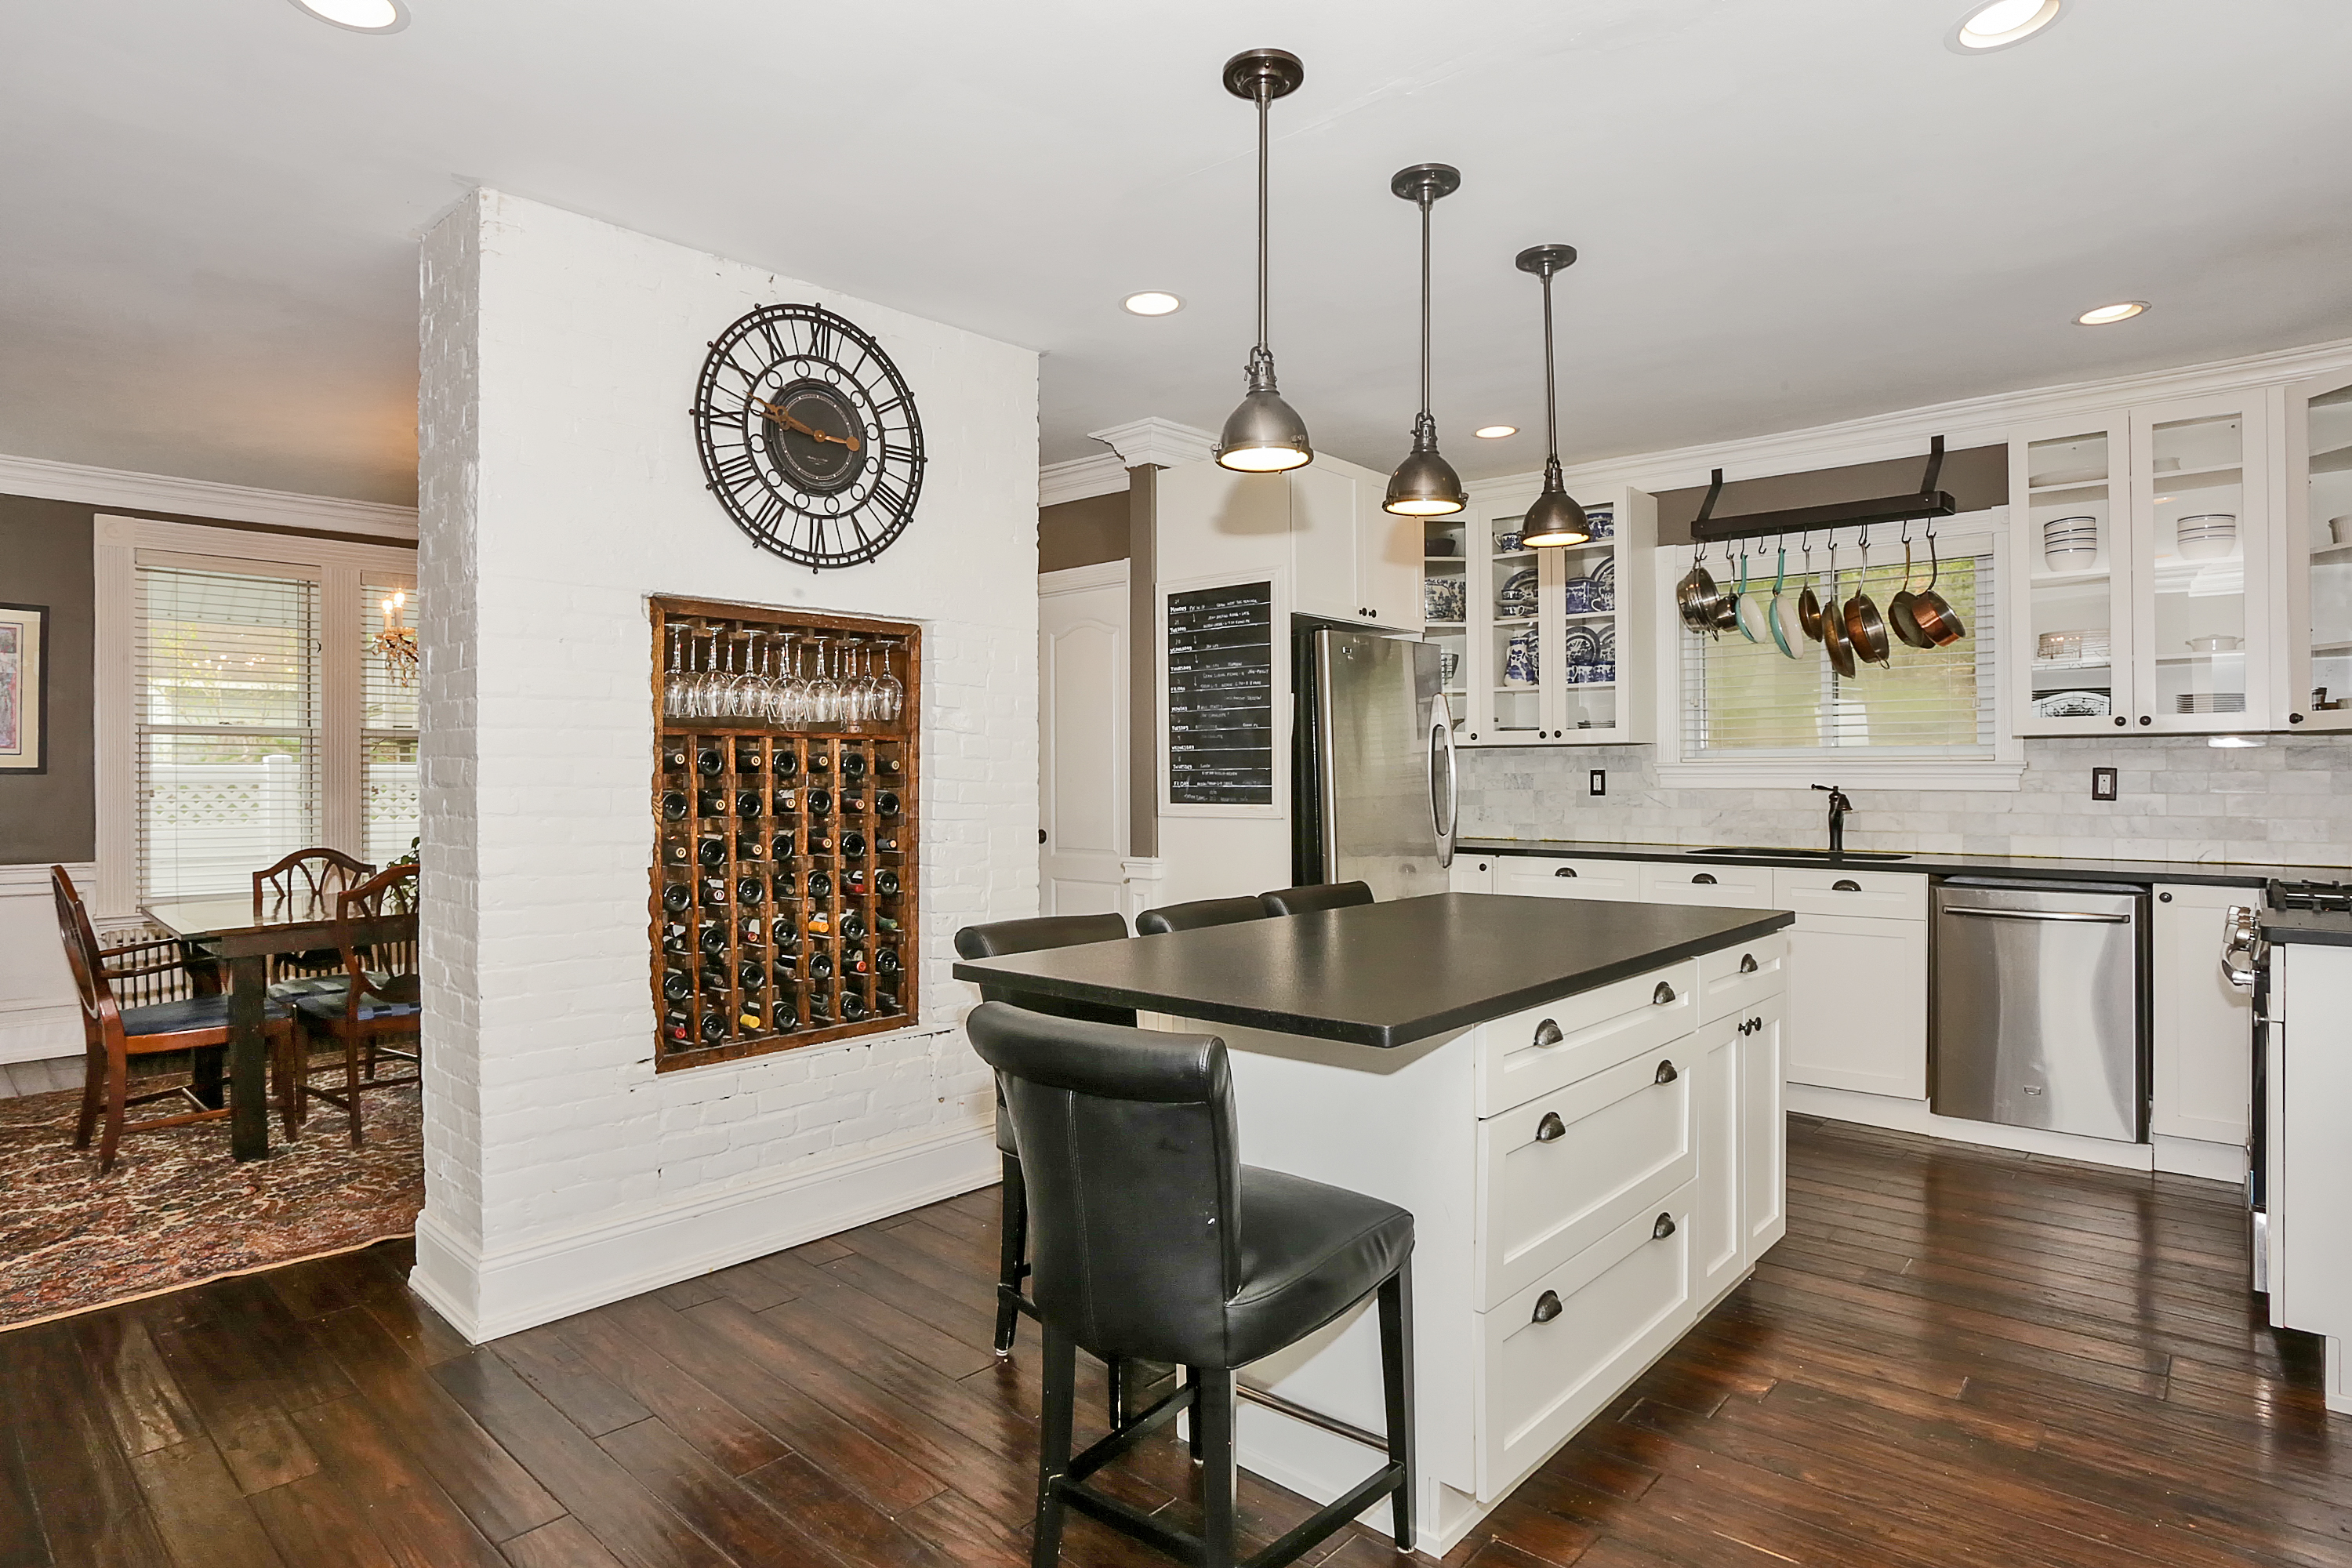 Stunning Kitchen at 221 Hudson Terrace a beautiful home for sale in Piermont by Donna Cox top Rockland County realtor